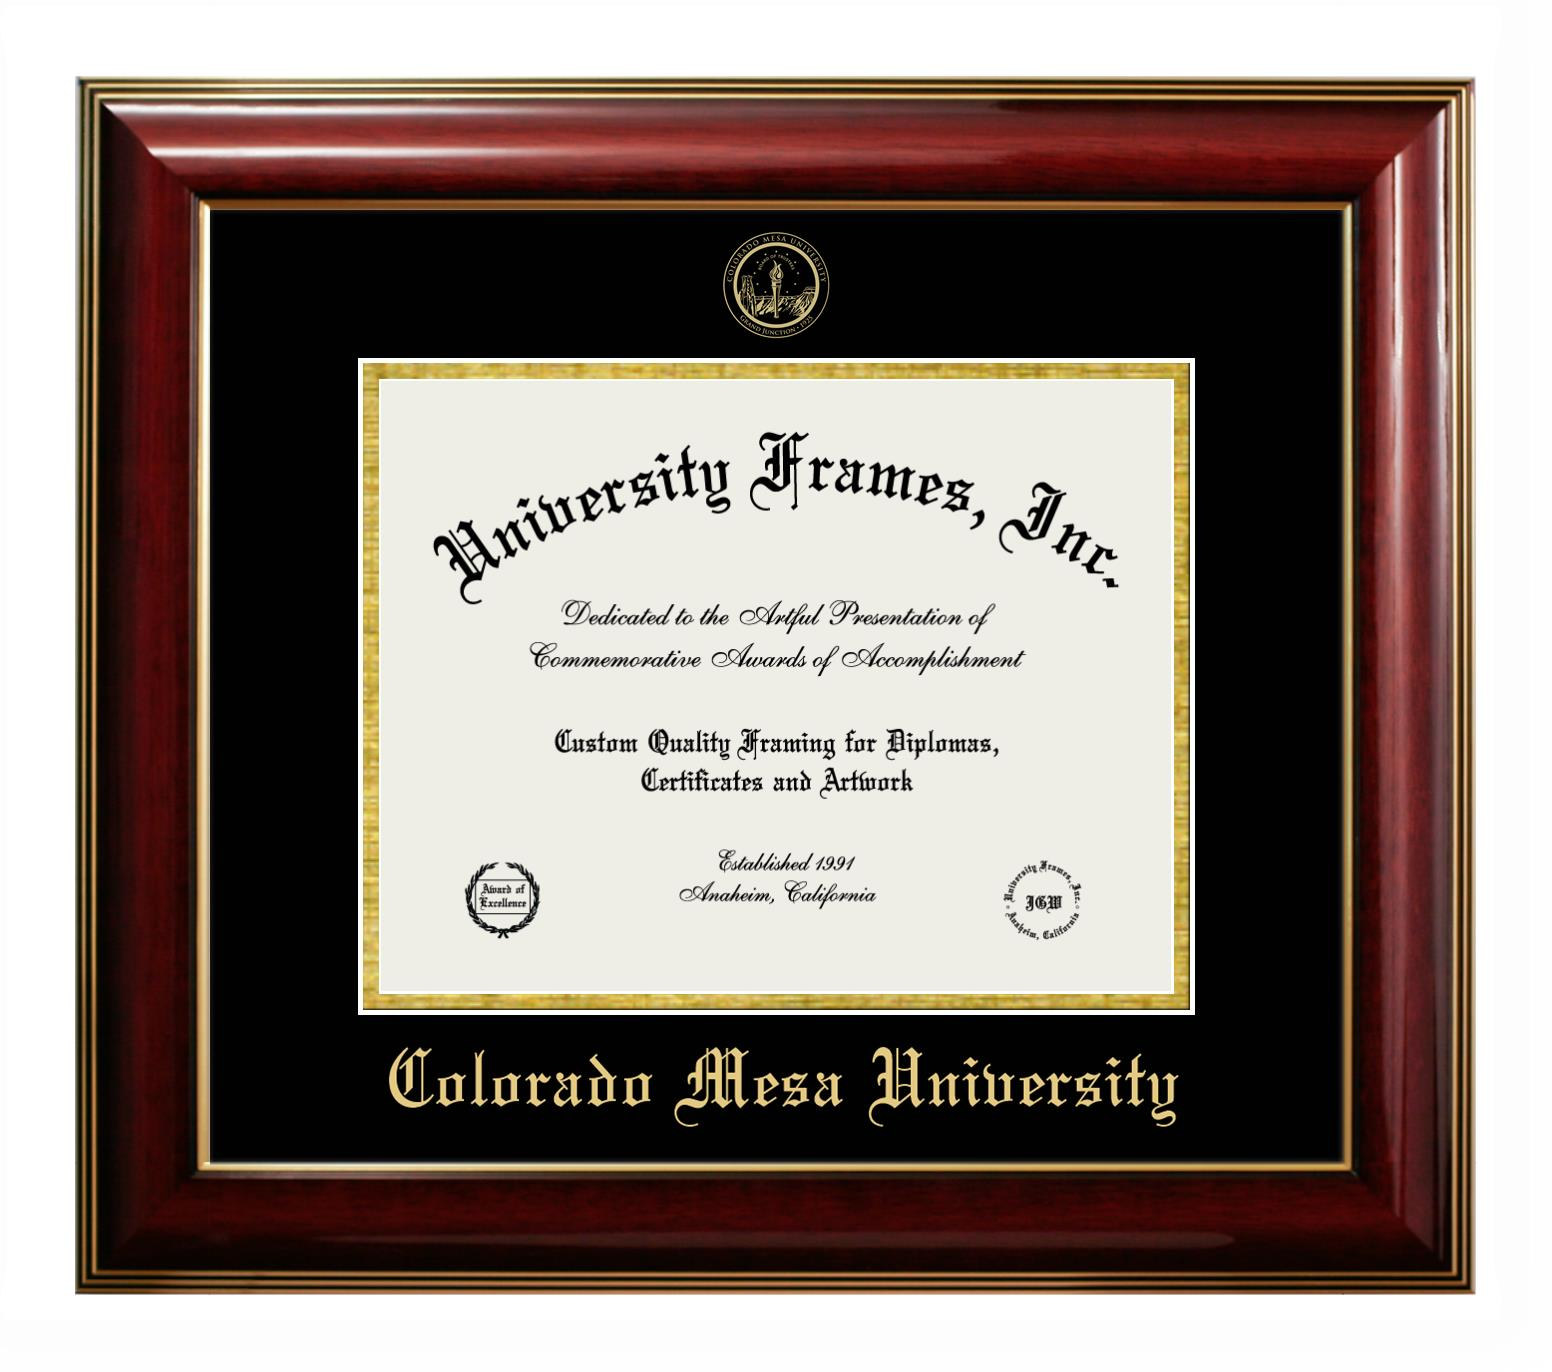 Colorado Mesa University Diploma Frame In Classic Mahogany With Gold Trim With Black Gold Mats